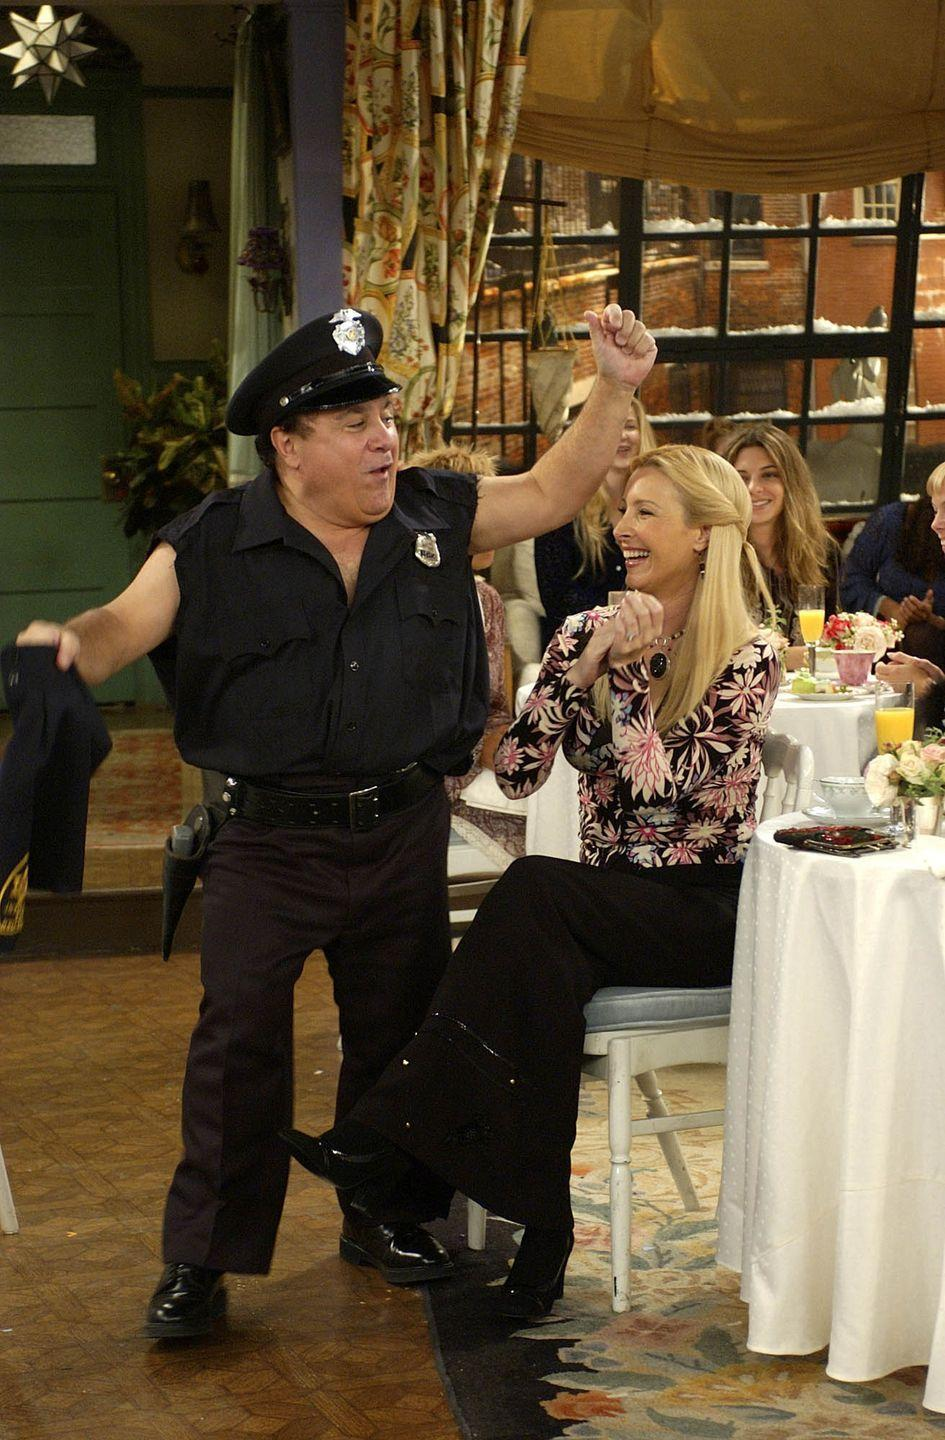 """<p>No <em>Friends</em> fan will ever forget one of the finale episodes, called """"The One Where the Stripper Cries."""" Danny DeVito guest-starred as an inadequate stripper for Phoebe's bridal shower, and let's just say it's very memorable.</p>"""